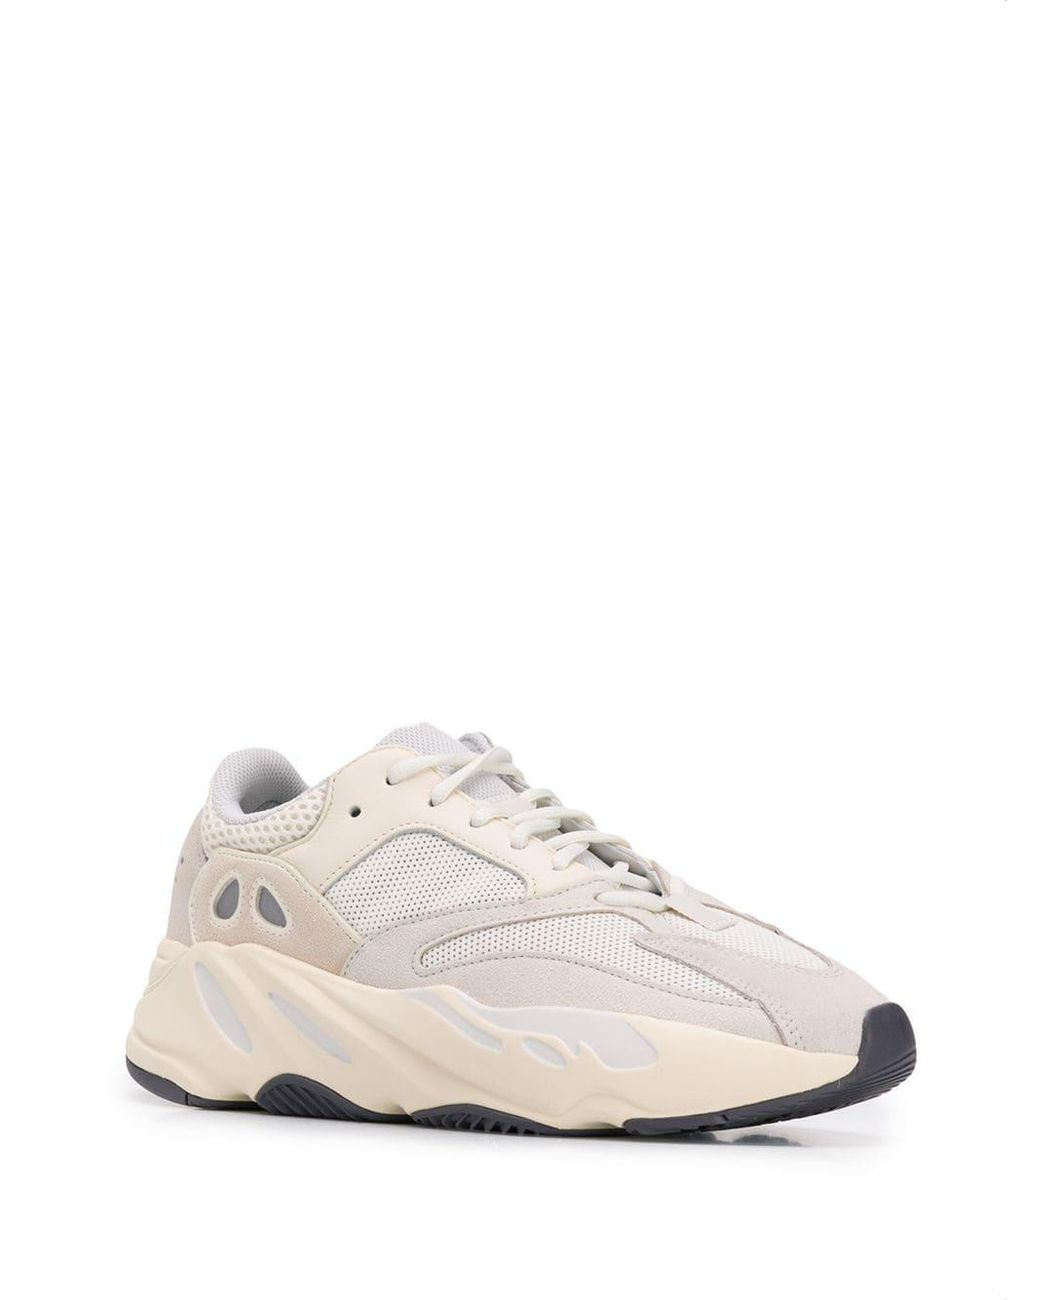 647146709dcc1 Lyst - adidas Yeezy Boost 700 Sneakers for Men